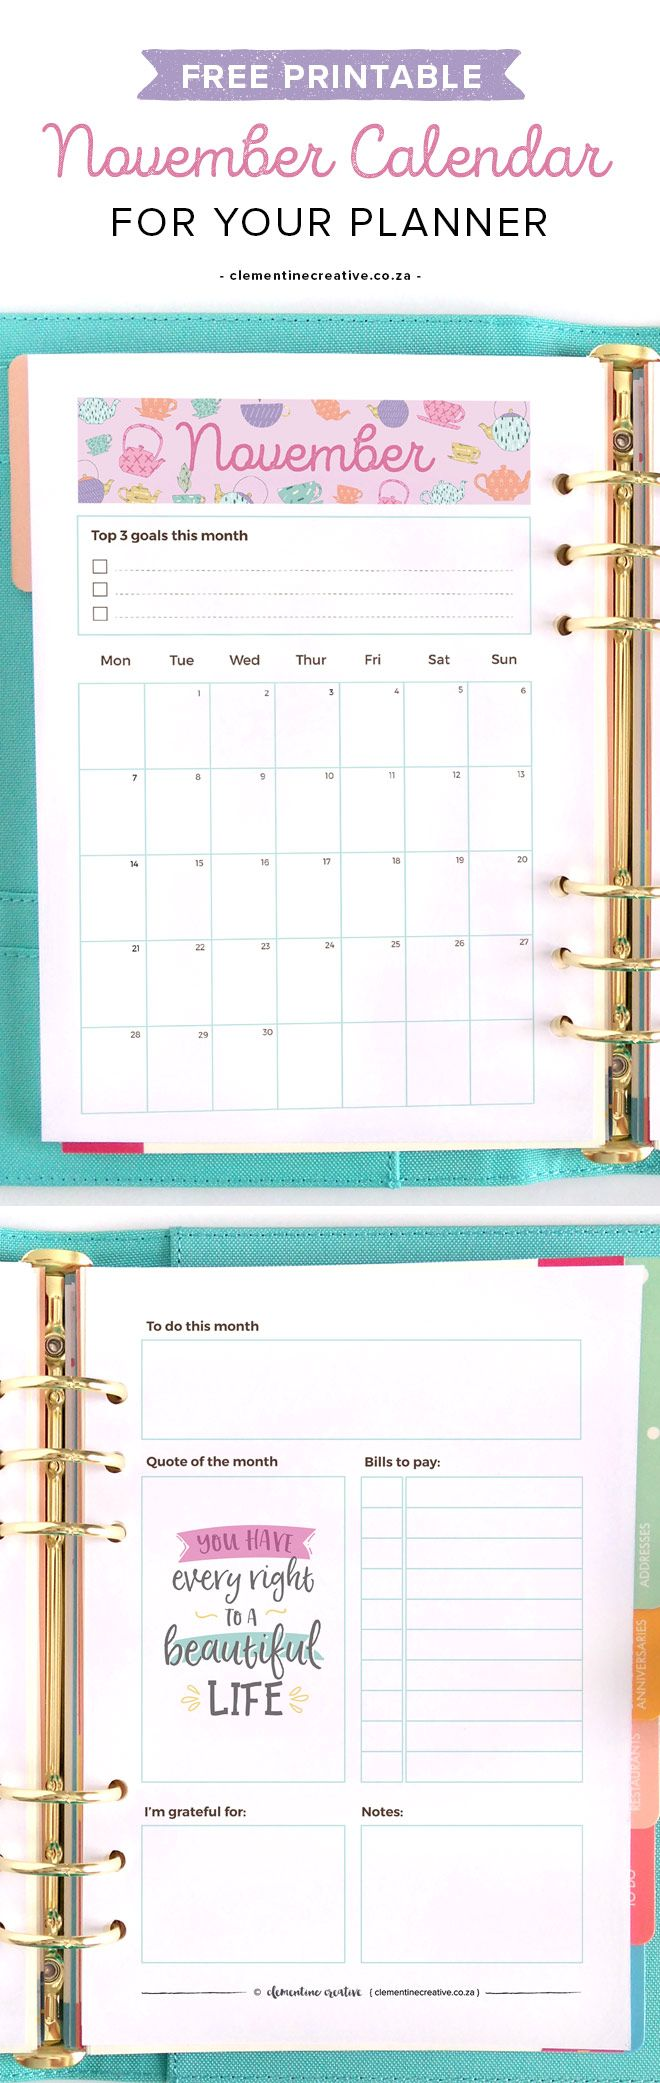 Best 25+ Monthly planner ideas on Pinterest | Monthly ...